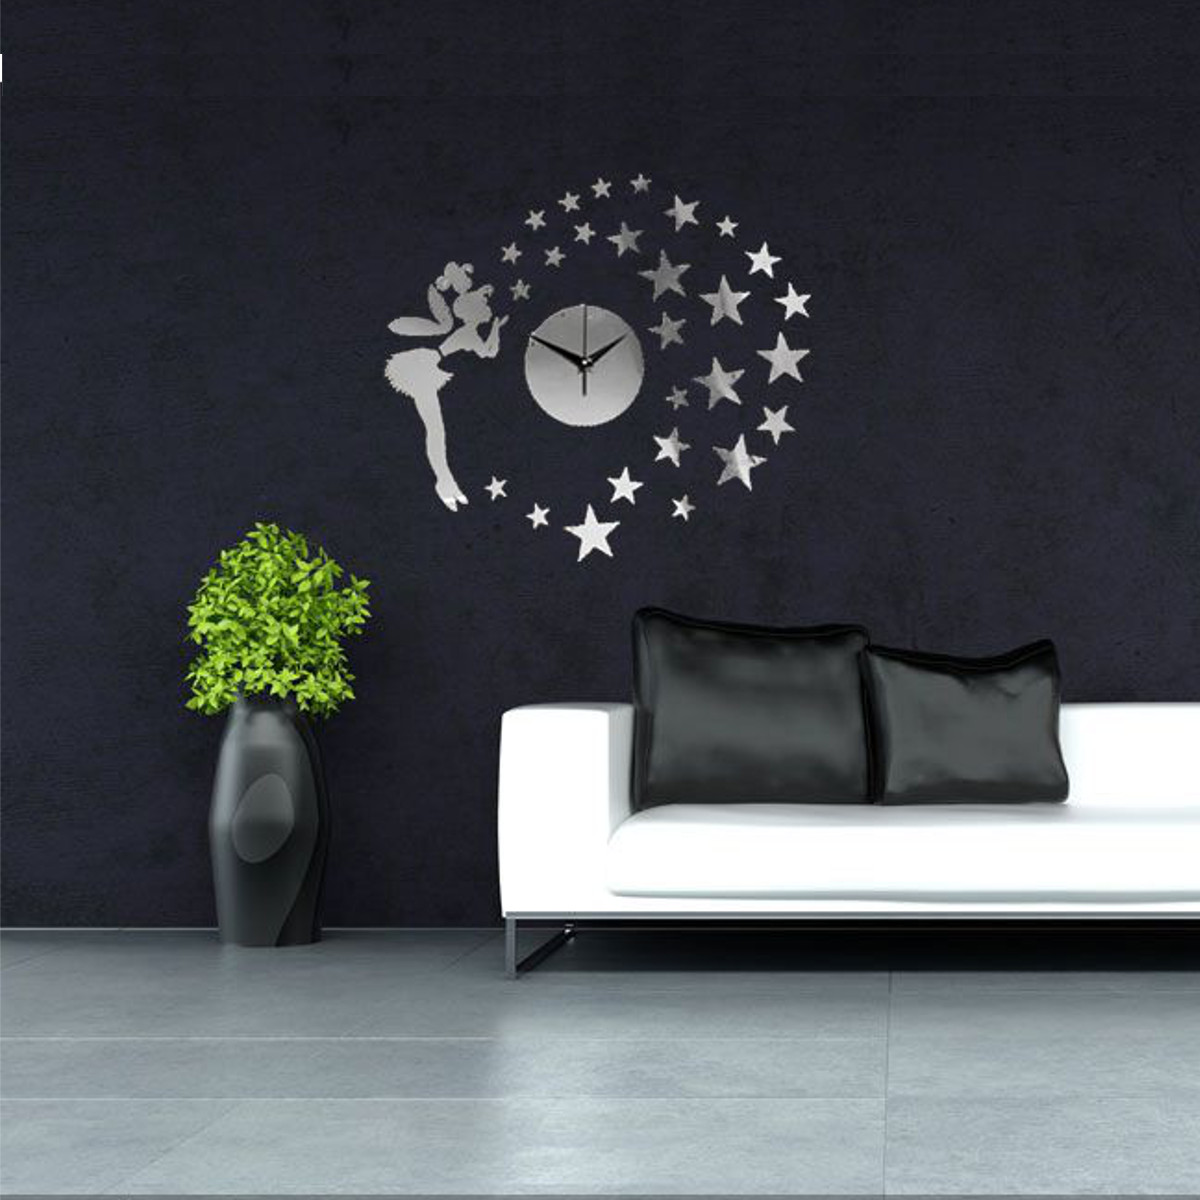 Diy 3d modern acrylic fairy star mirror wall clock home for 3d acrylic mirror wall sticker clock decoration decor